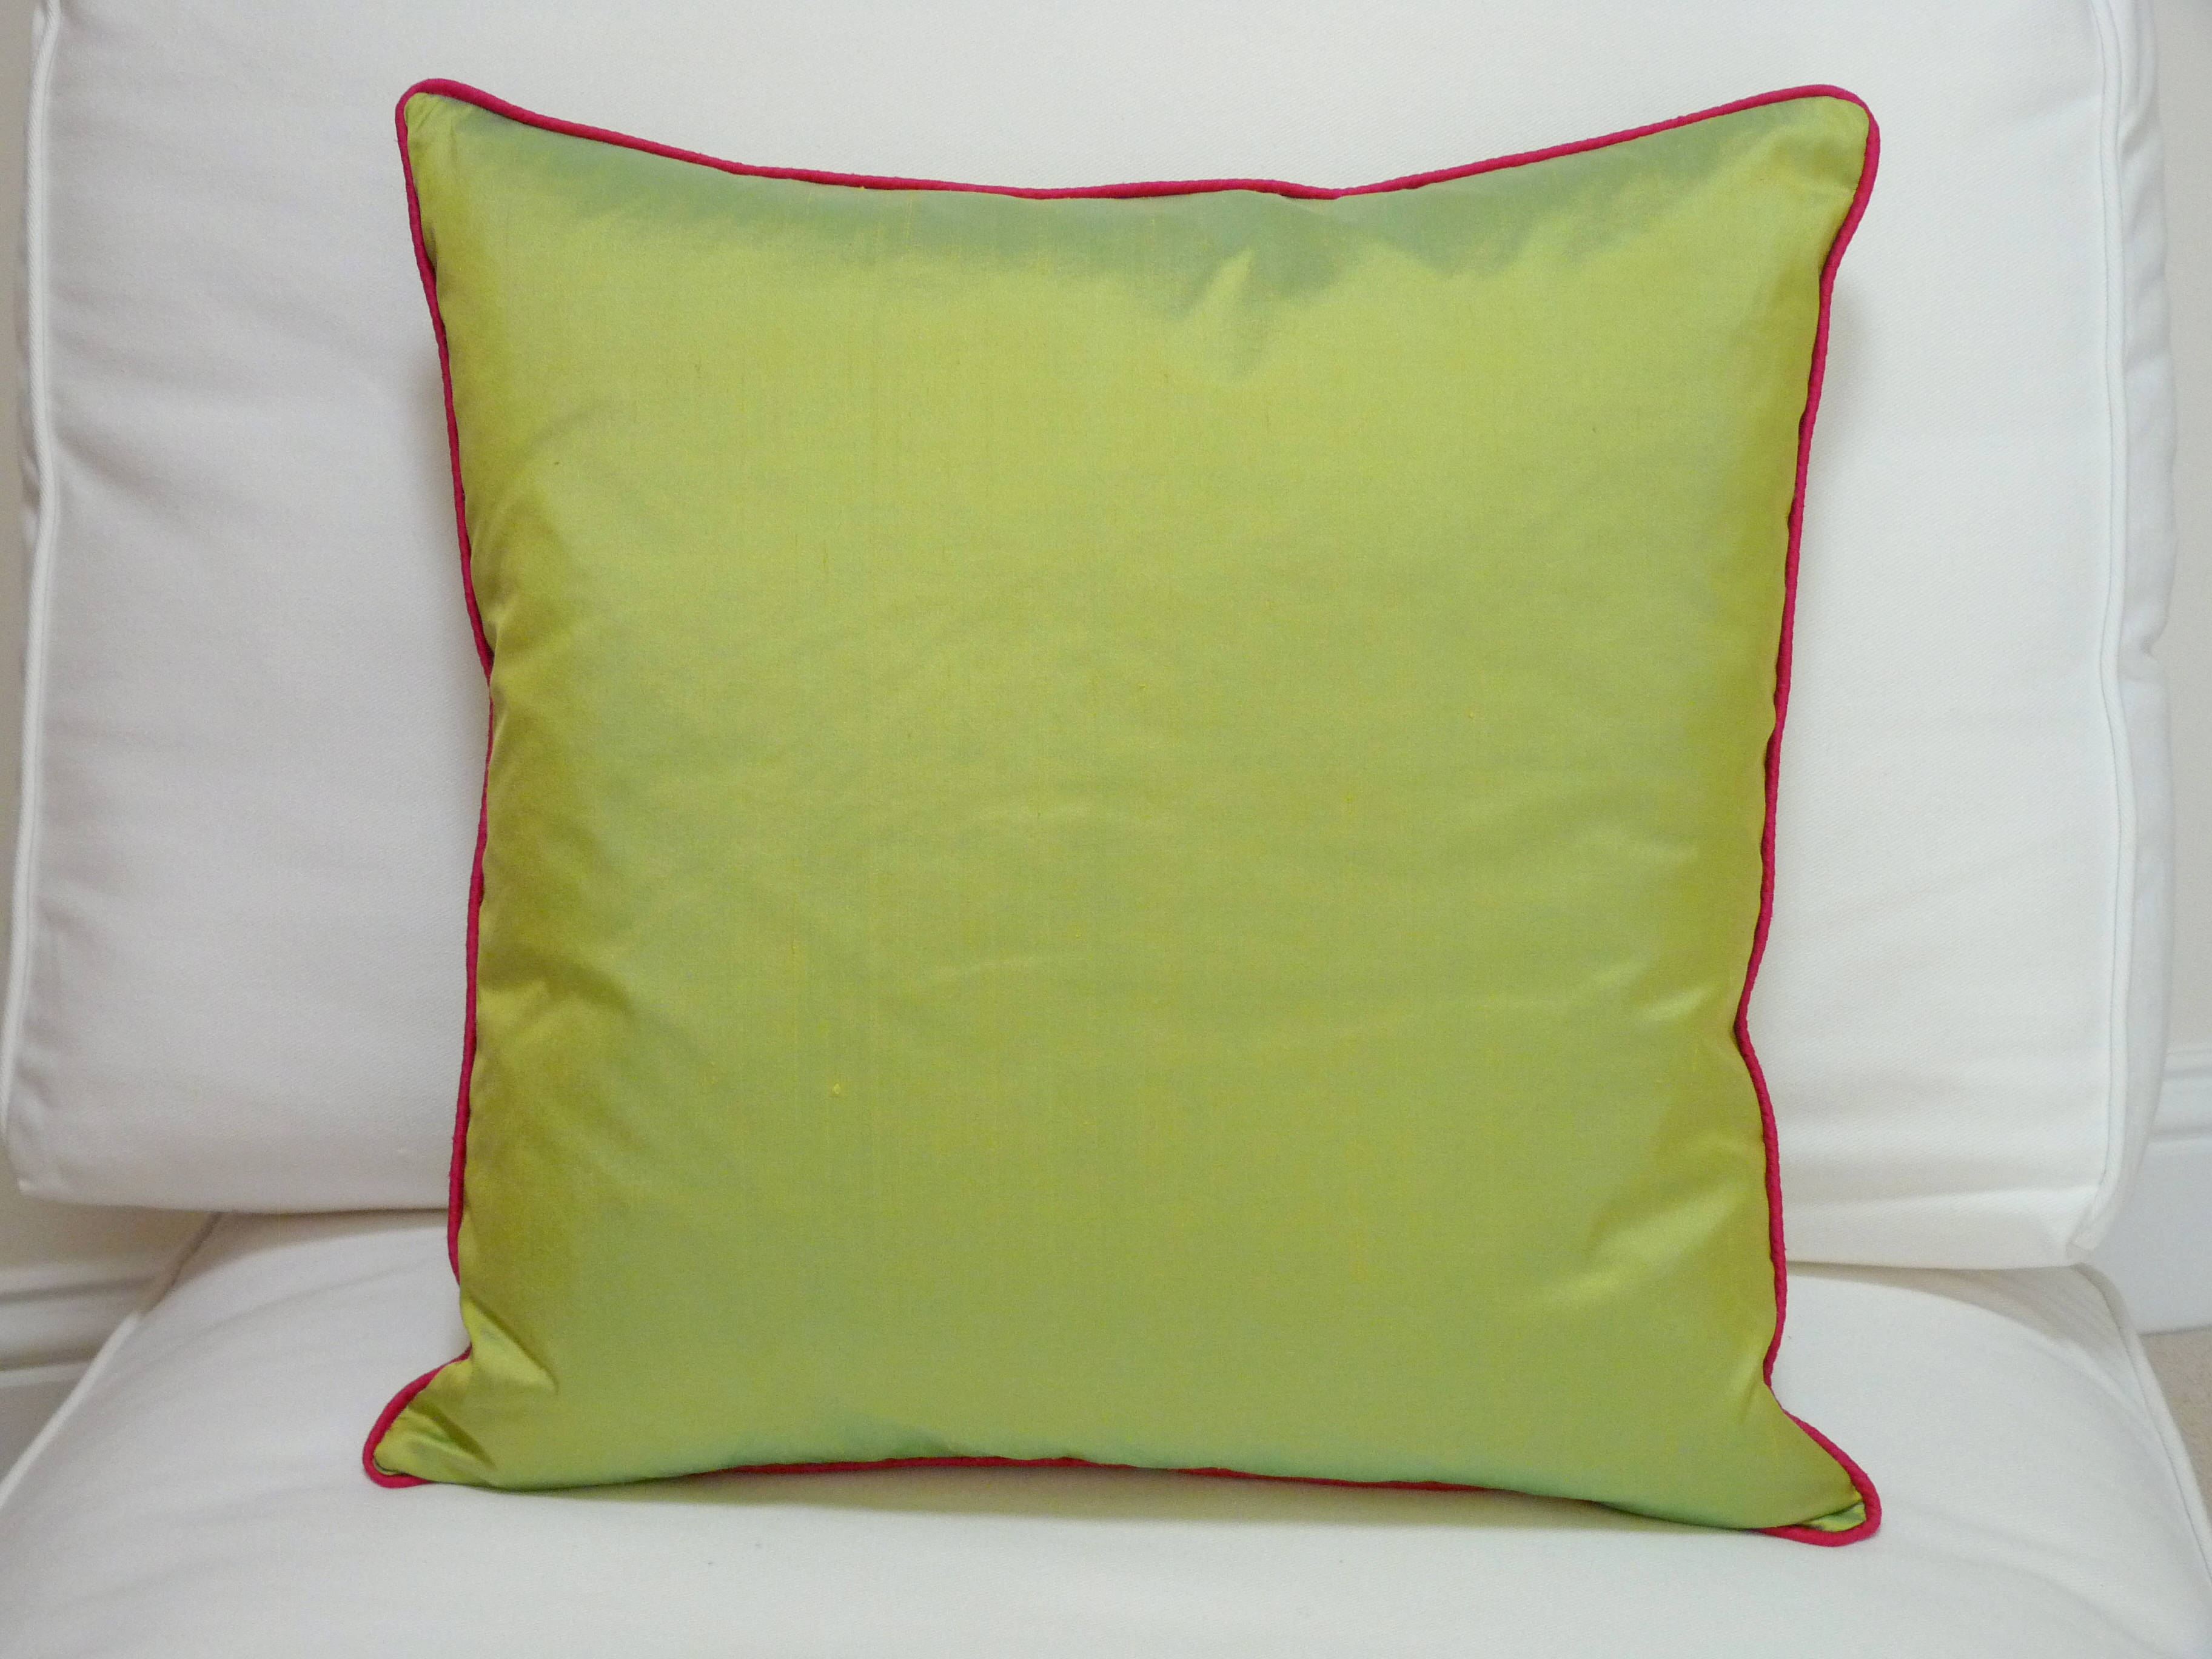 Boutique Contrast Piped Cushion Lime with cerise piping  : P1040302 0011 from www.vanessagrape.co.uk size 3648 x 2736 jpeg 3858kB